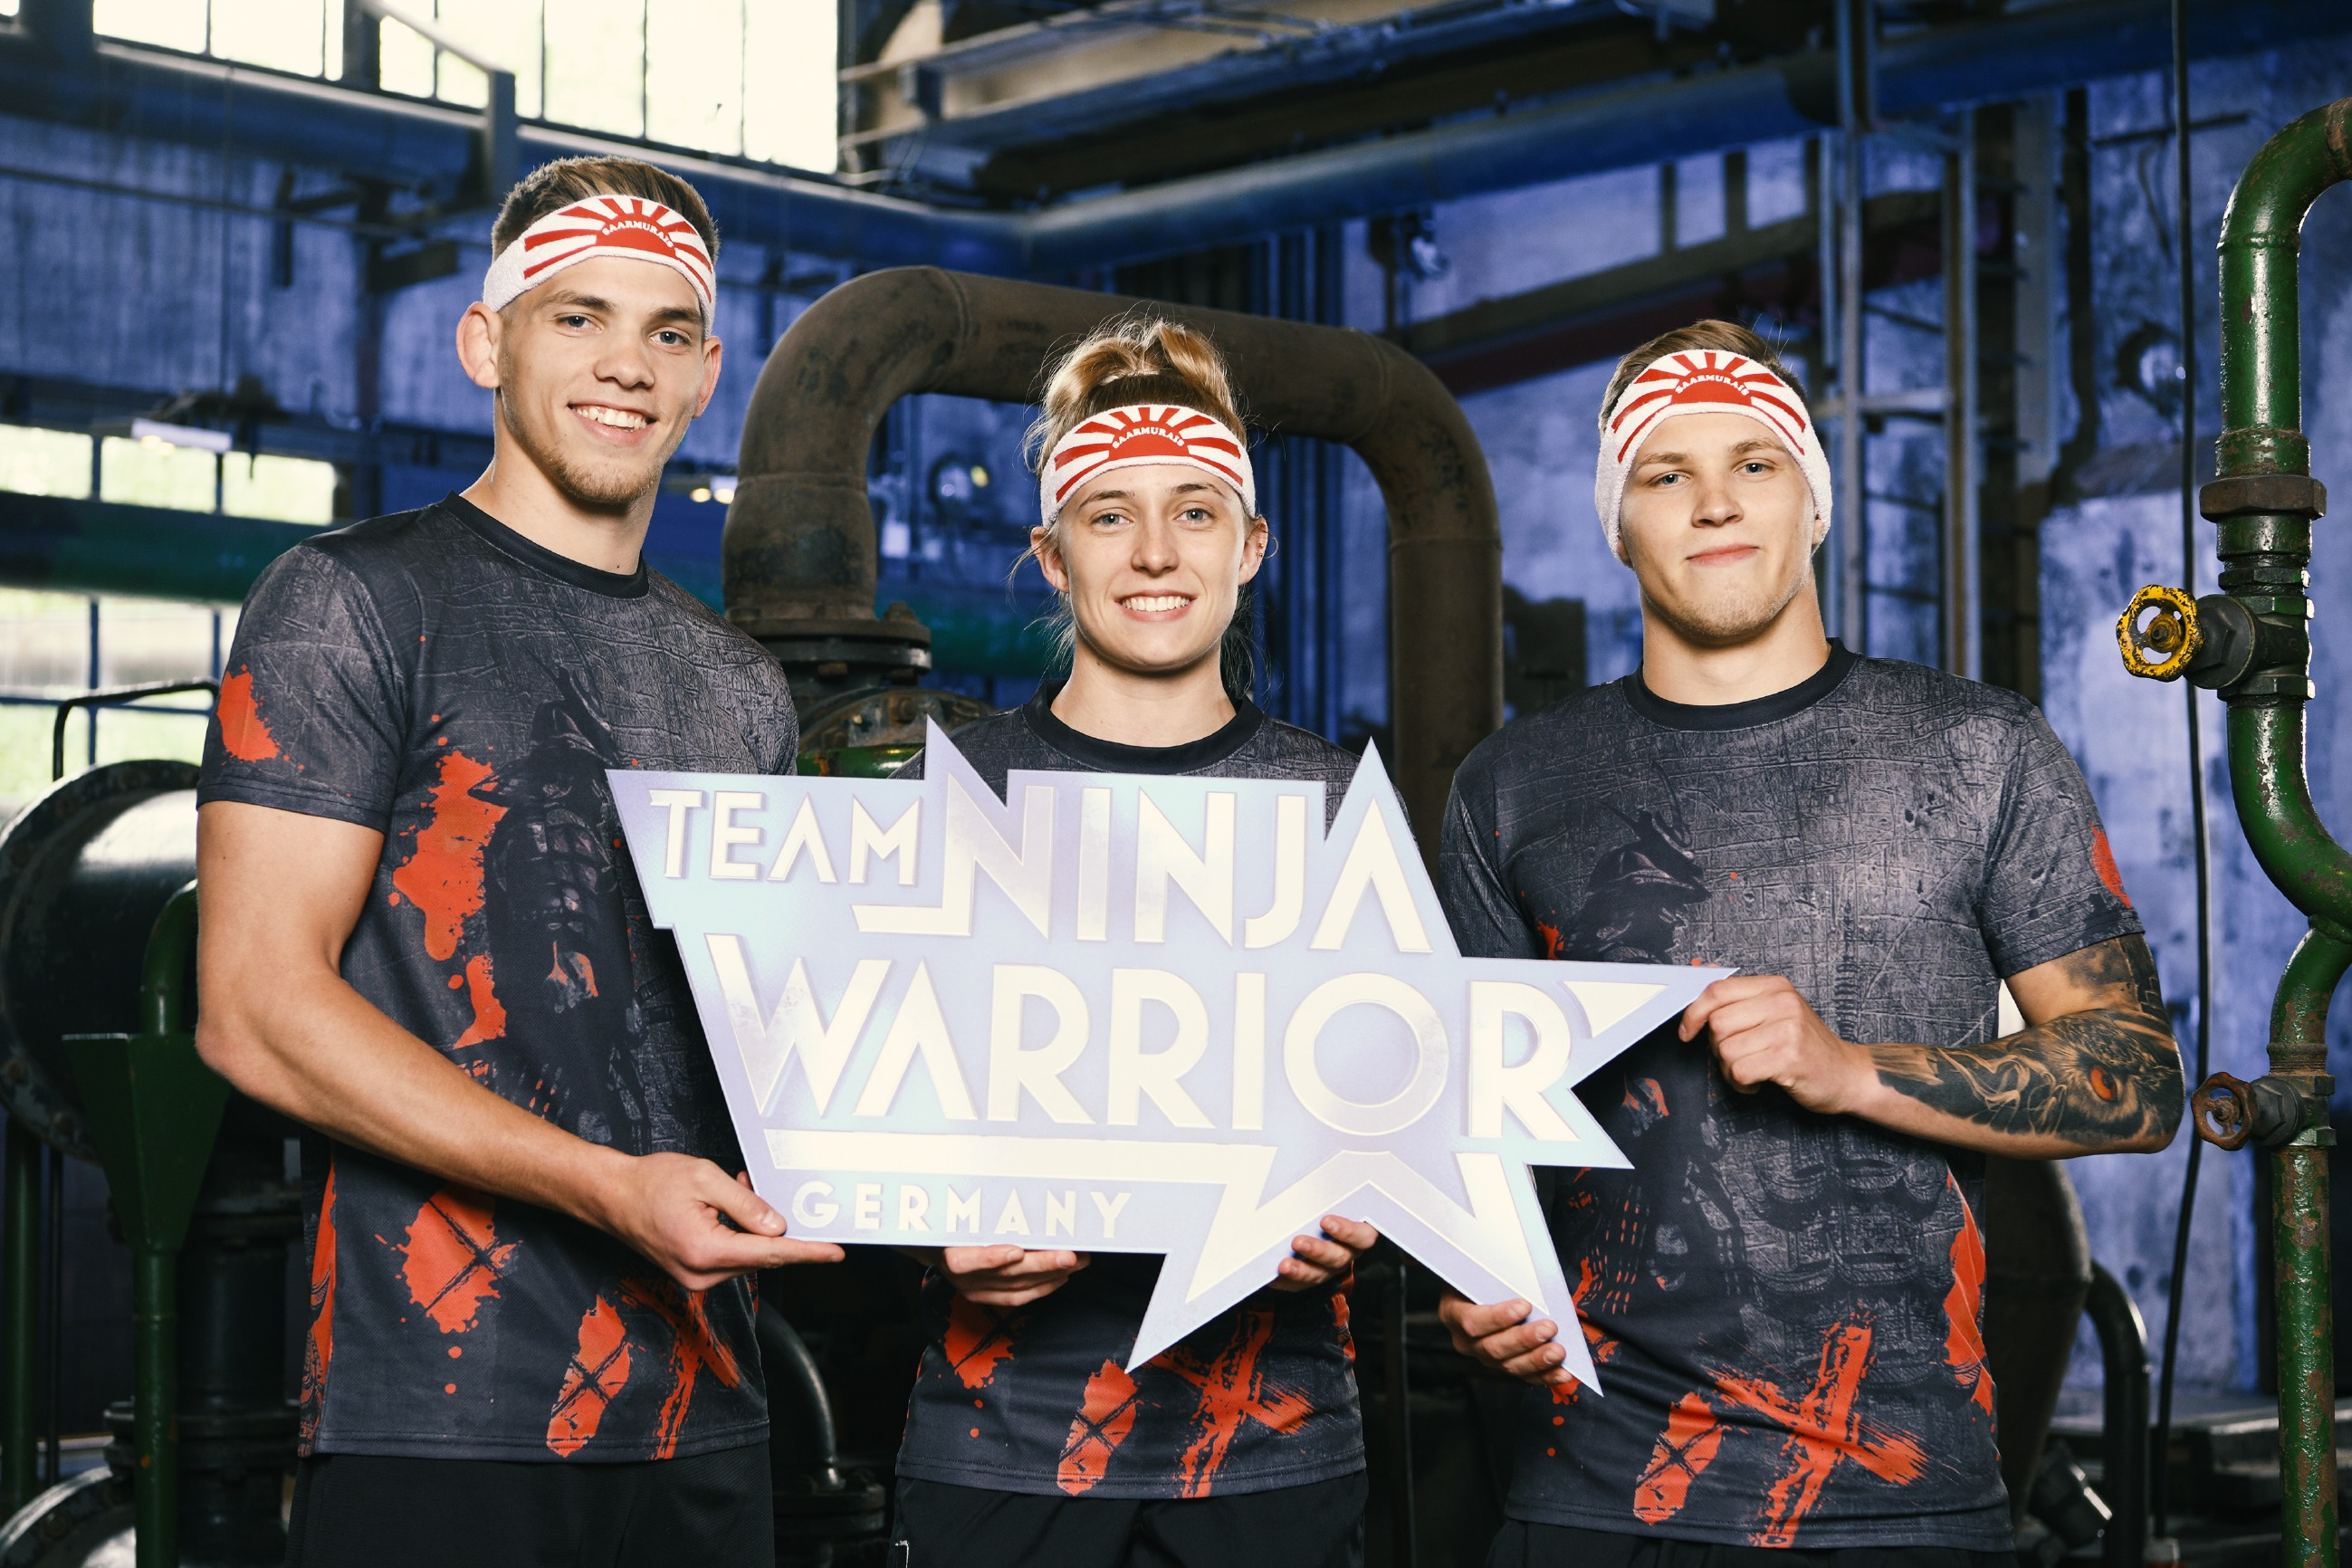 Team Ninja Warrior Germany 2019 - Team